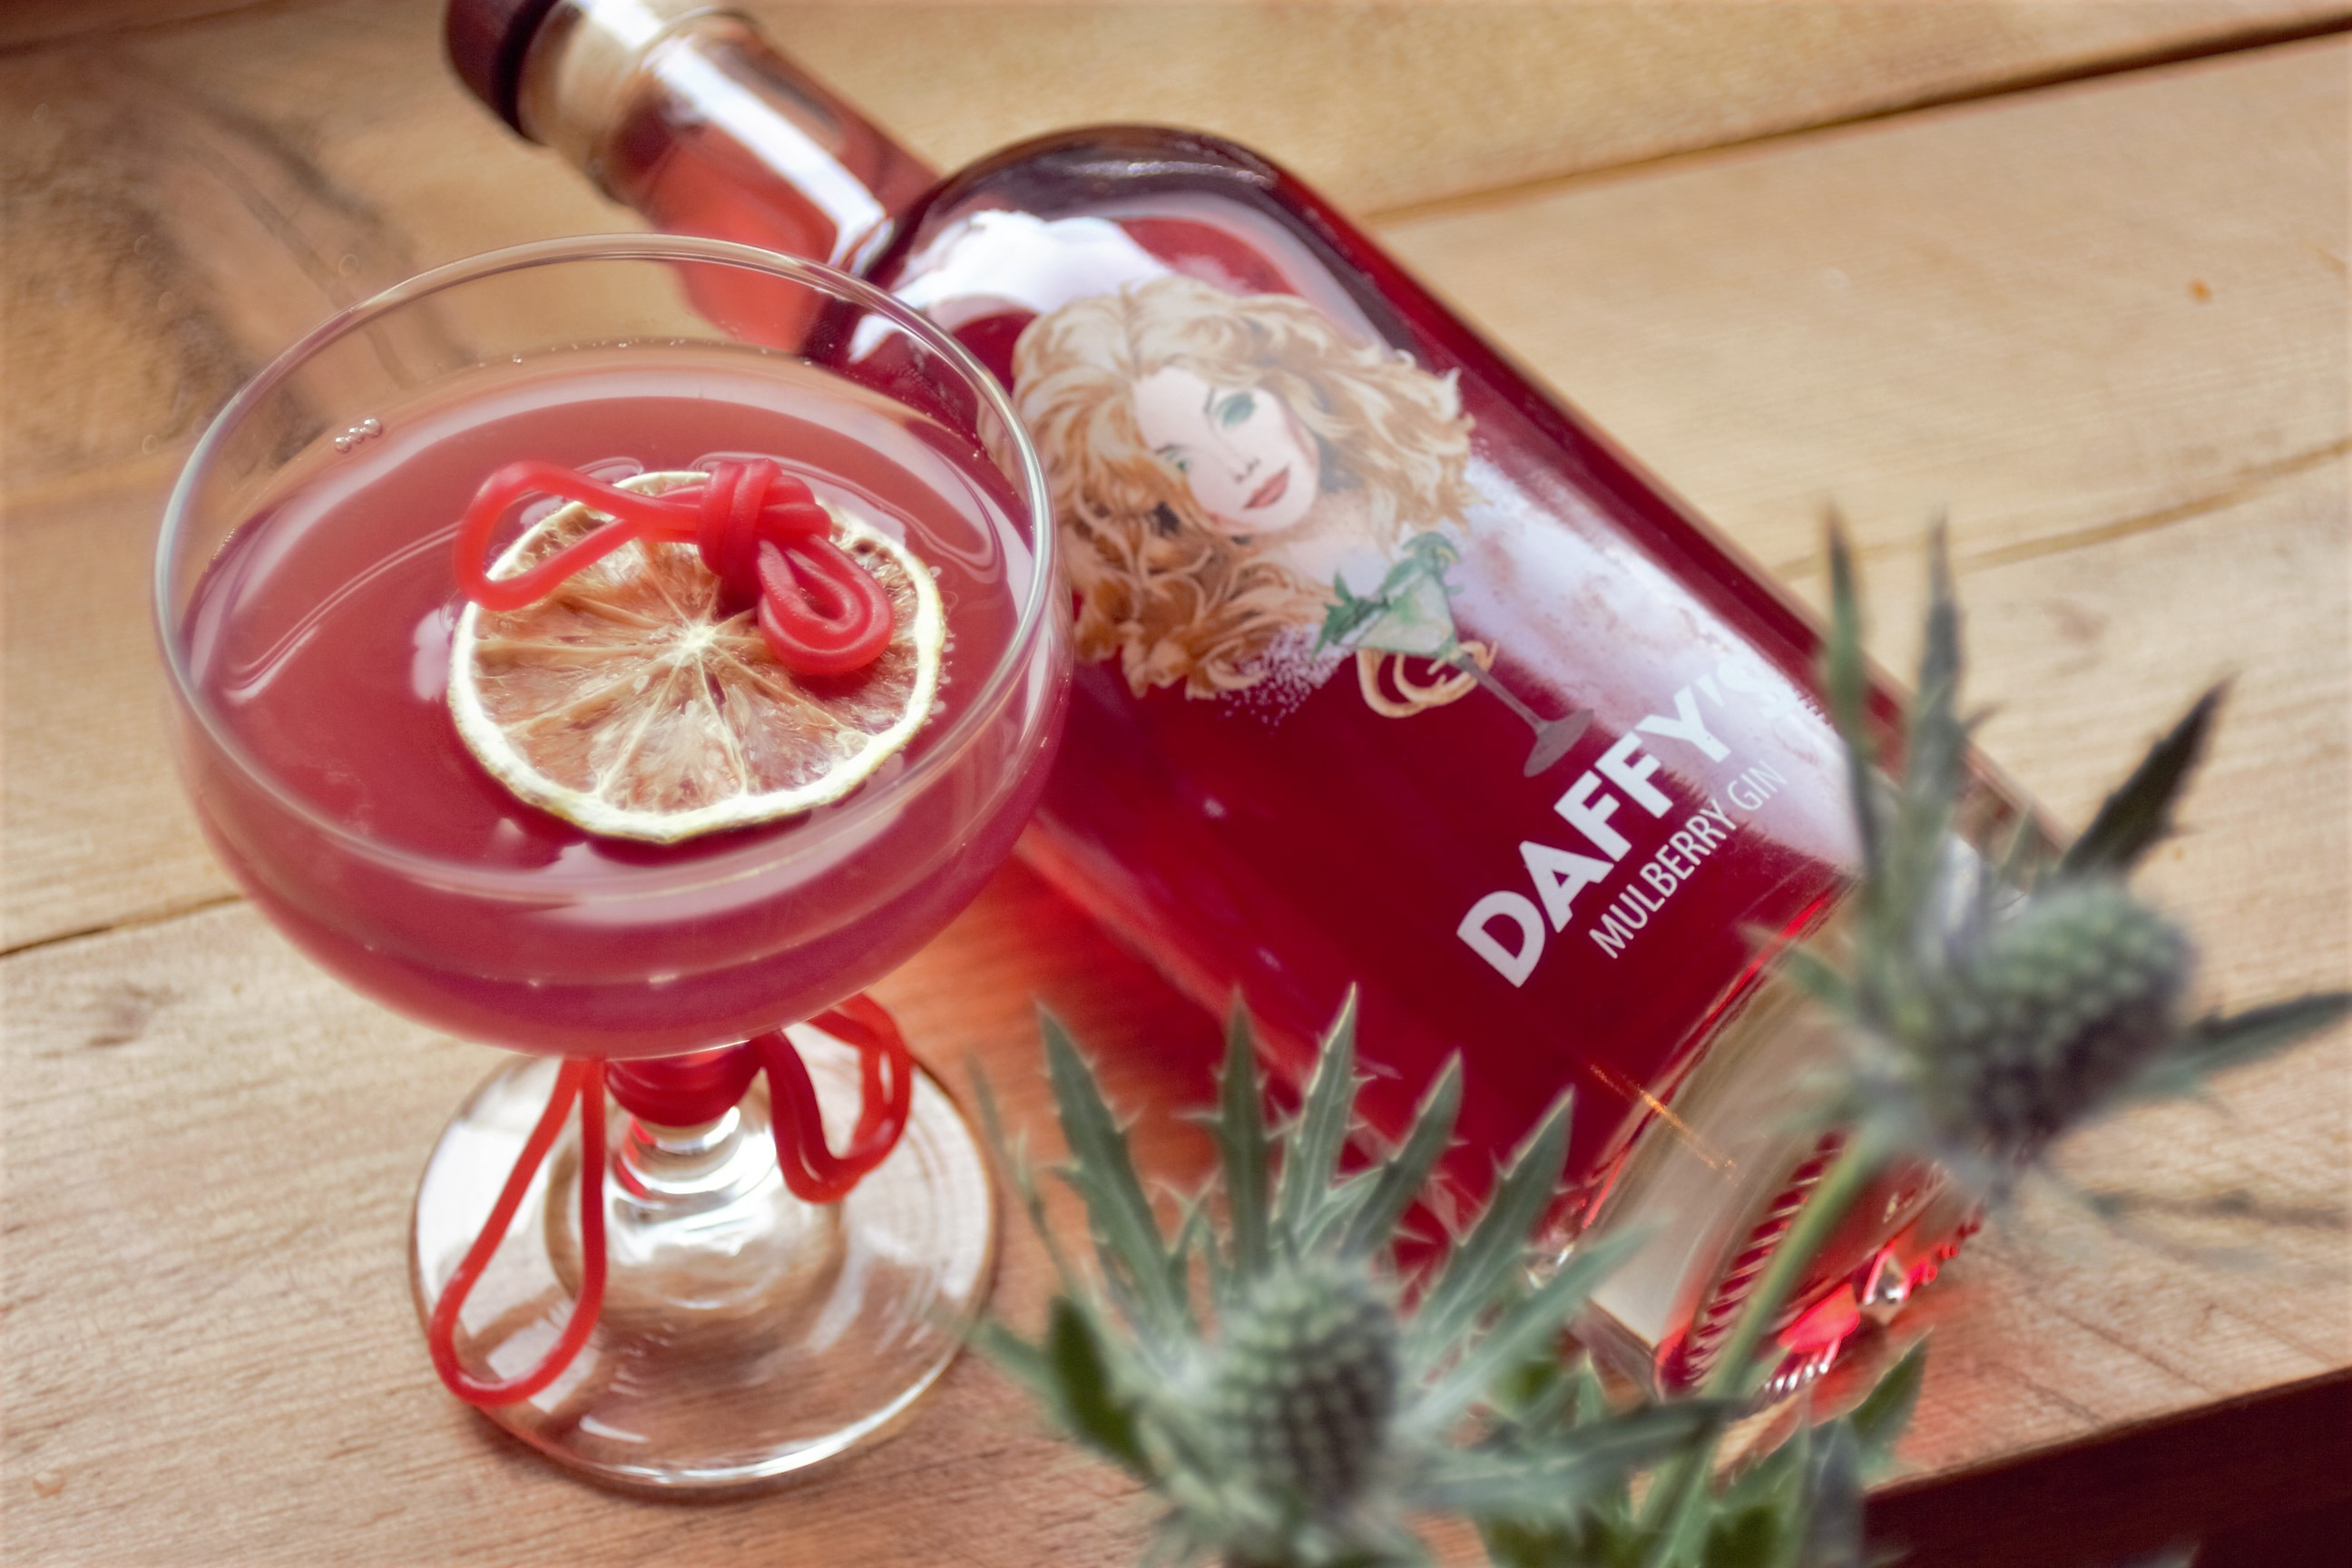 Daffy's Mulberry Gin